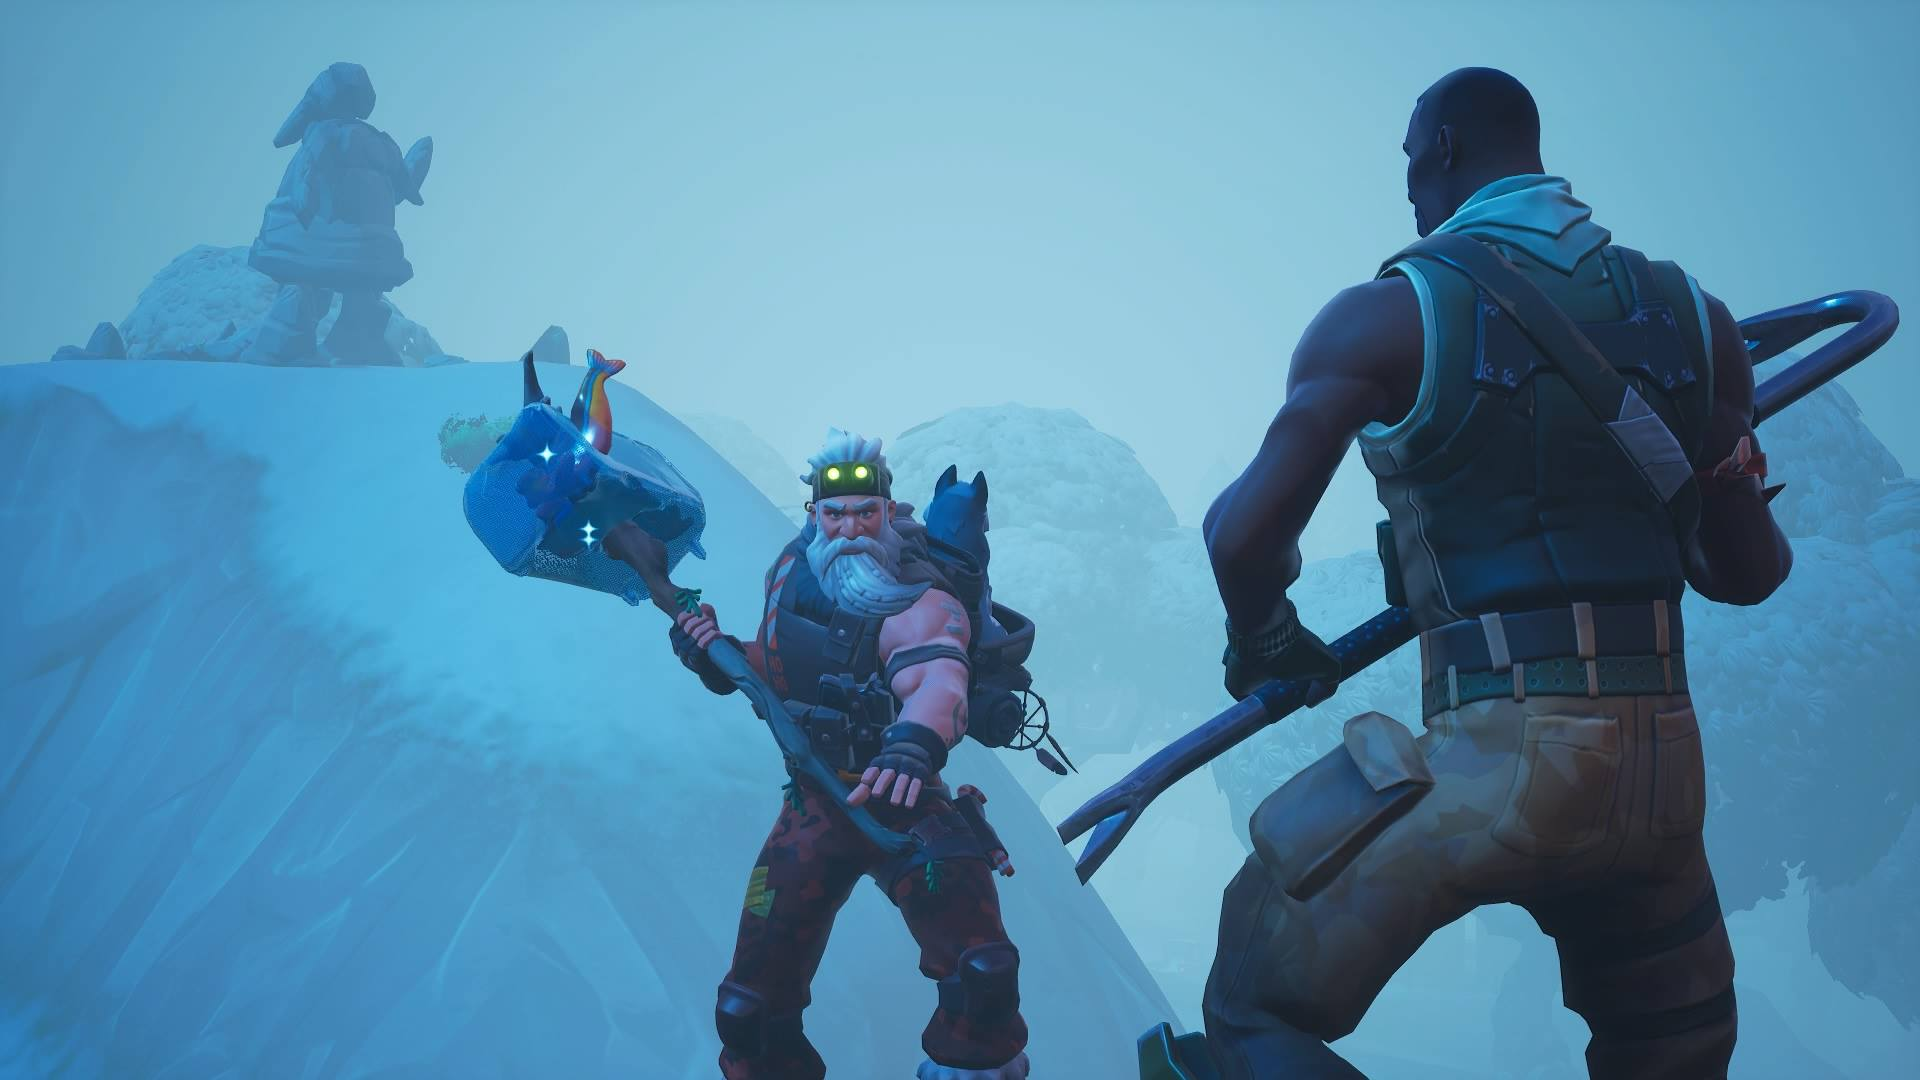 Fortnite' Search Between Mysterious Hatch, Giant Rock Lady, and